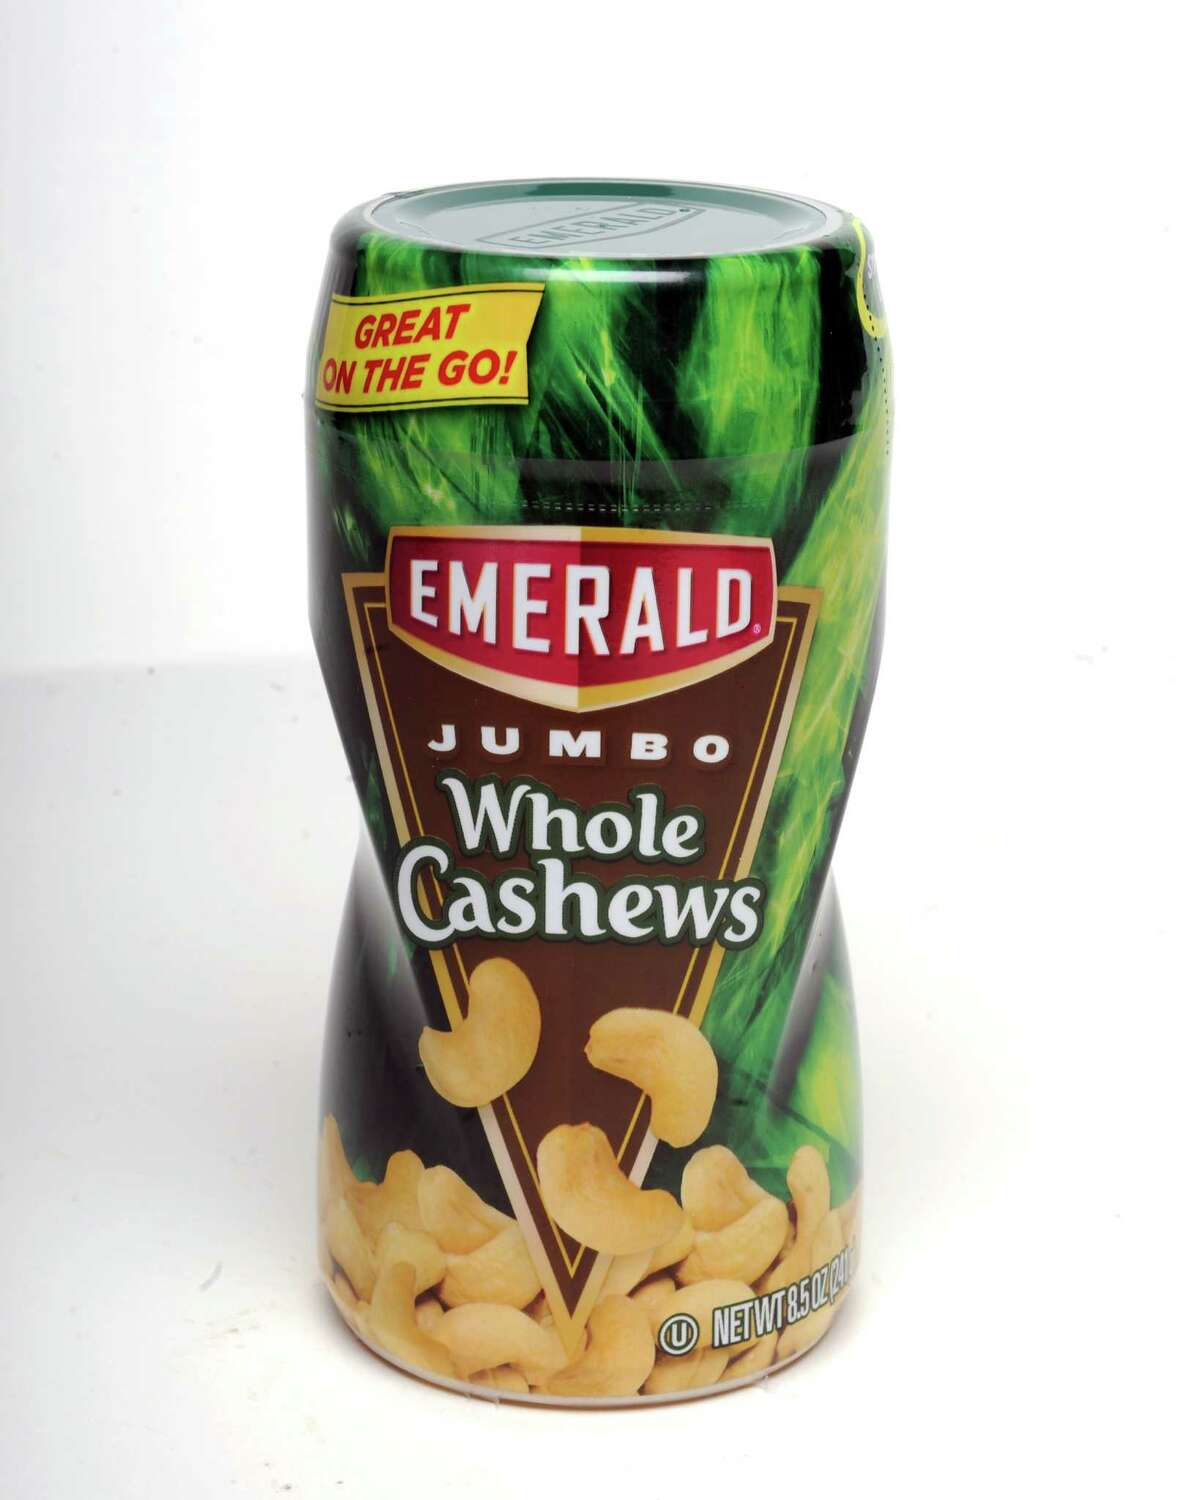 A fistful of cashews from the party bowl requires an hour's walk to work off.